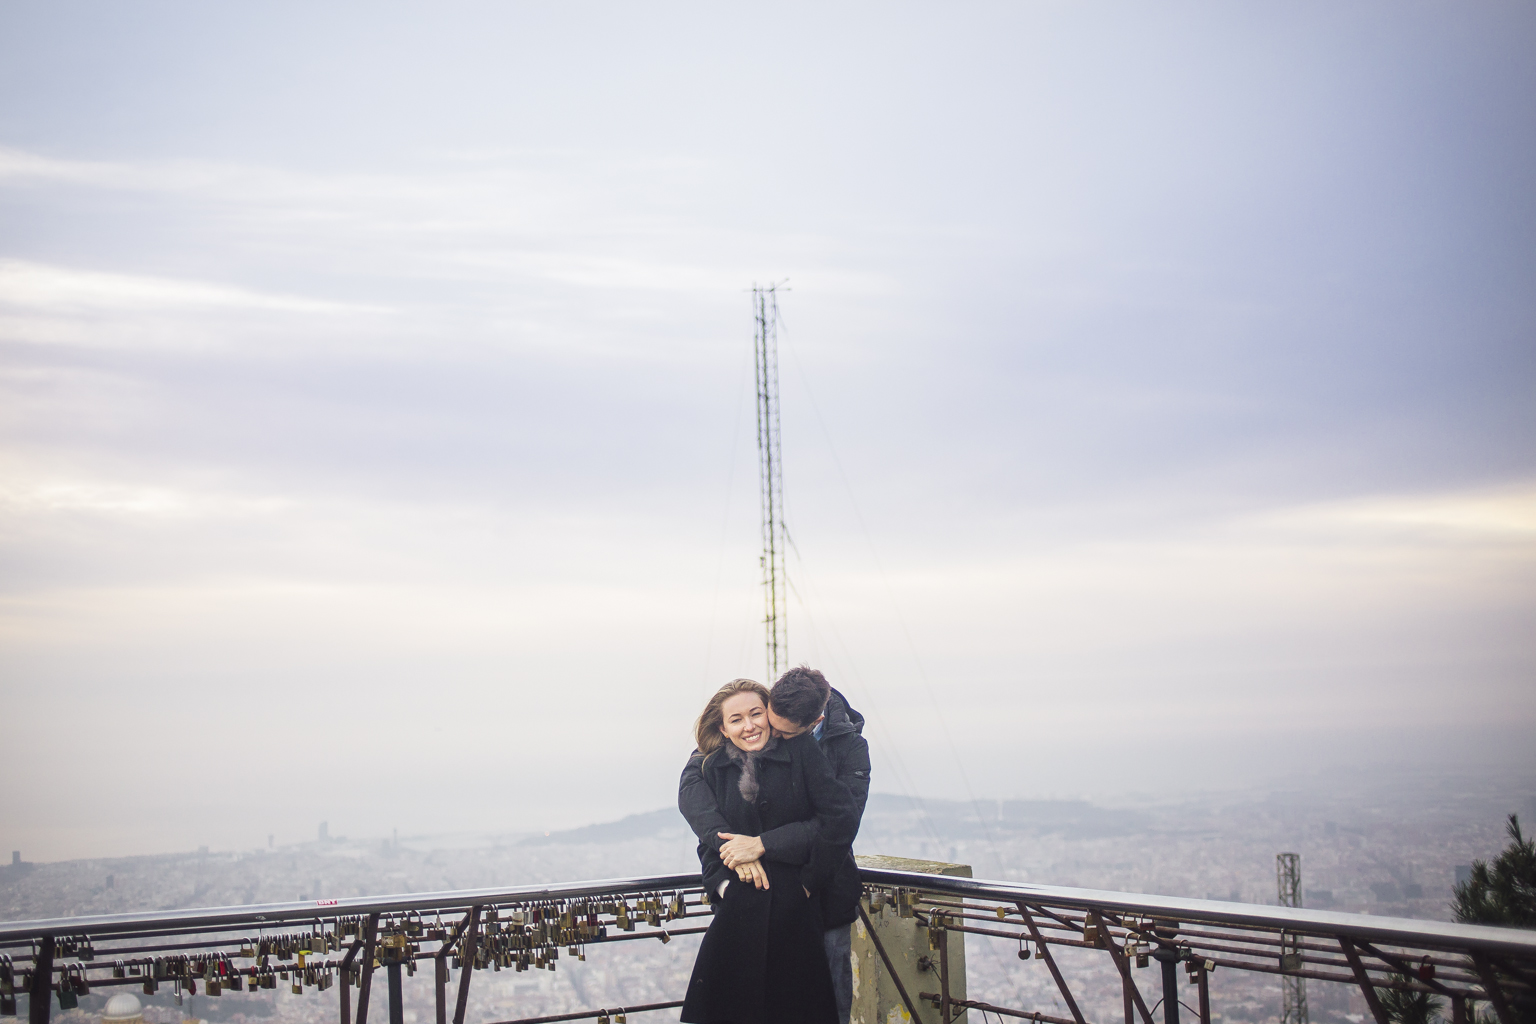 Preboda en Barcelona :: Save de date :: Fotógrafo romántico :: Fotógrafo de bodas Barcelona :: Fotógrafo de boda :: Fotografía de boda Barcelona :: Mirador de l'Arrabassada :: Reportaje de pareja romántico Barcelona :: Romatic Pictures Barcelona :: Romatic photographer :: Wedding photographer :: International wedding photographer :: Destination wedding photographer